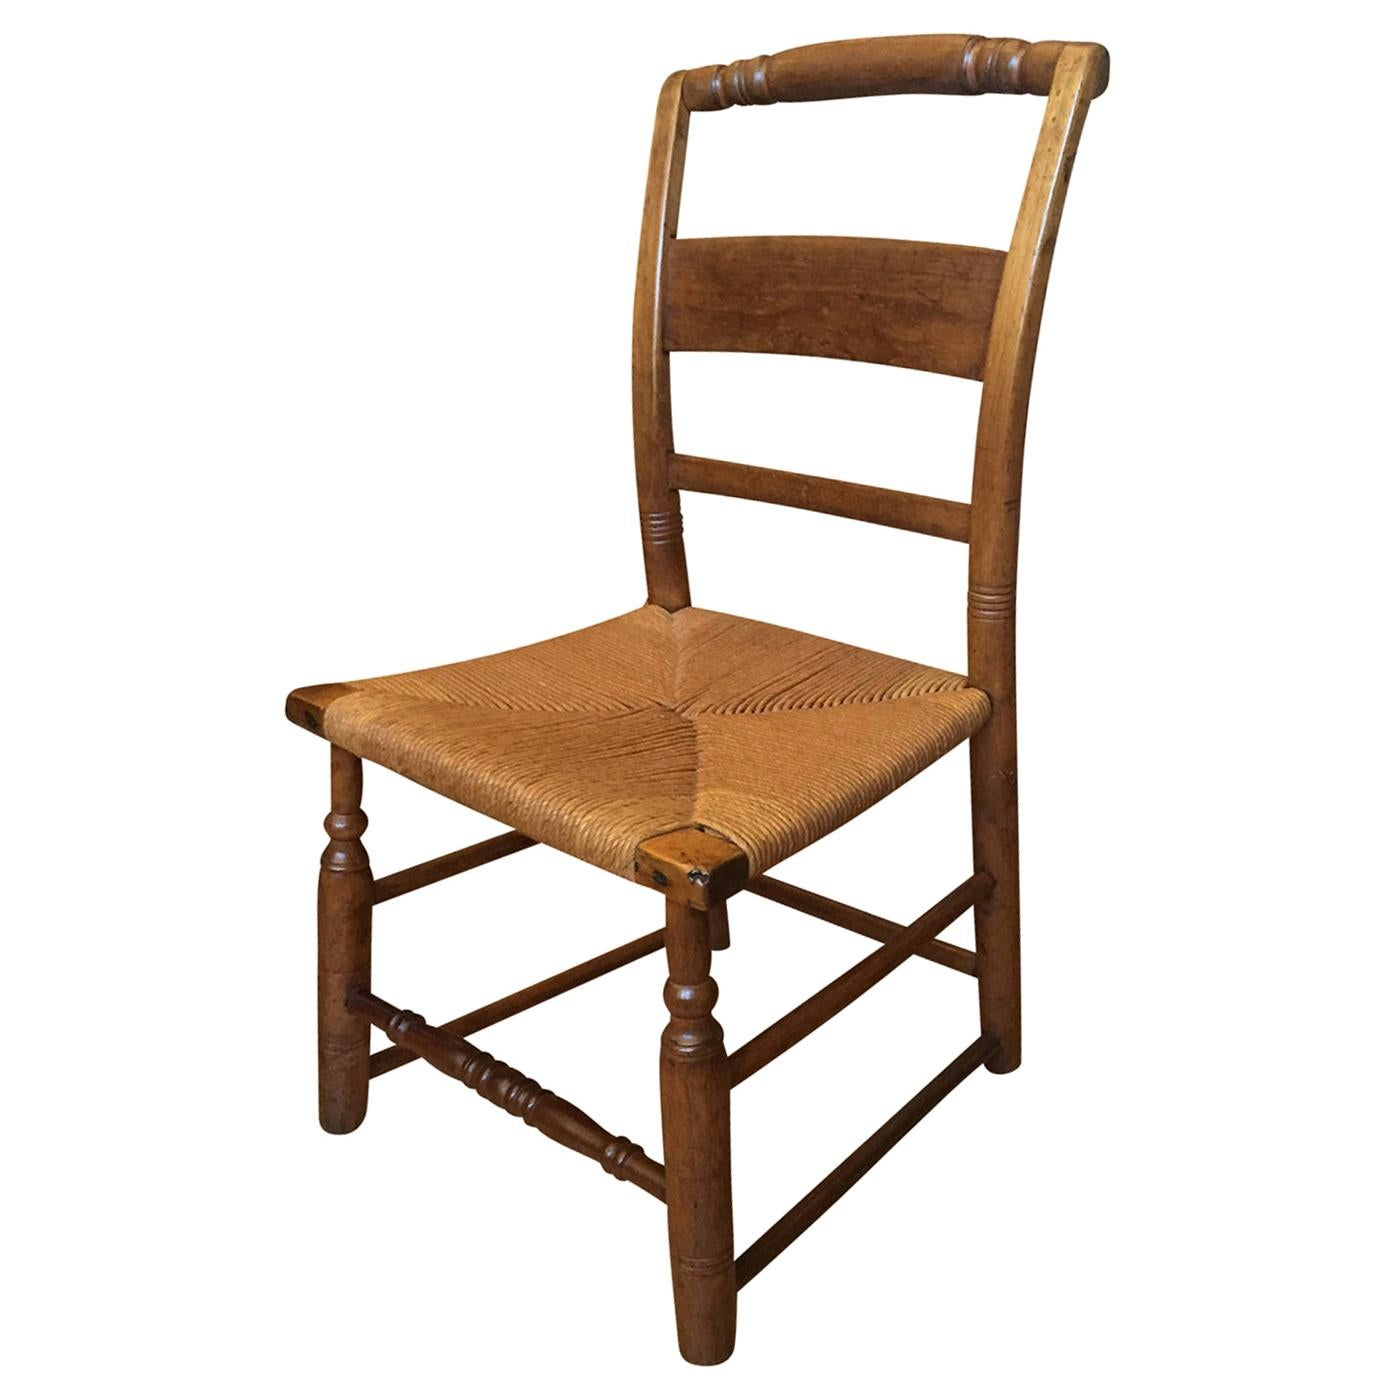 19th Century American Work Child's Chair with Rush Seat